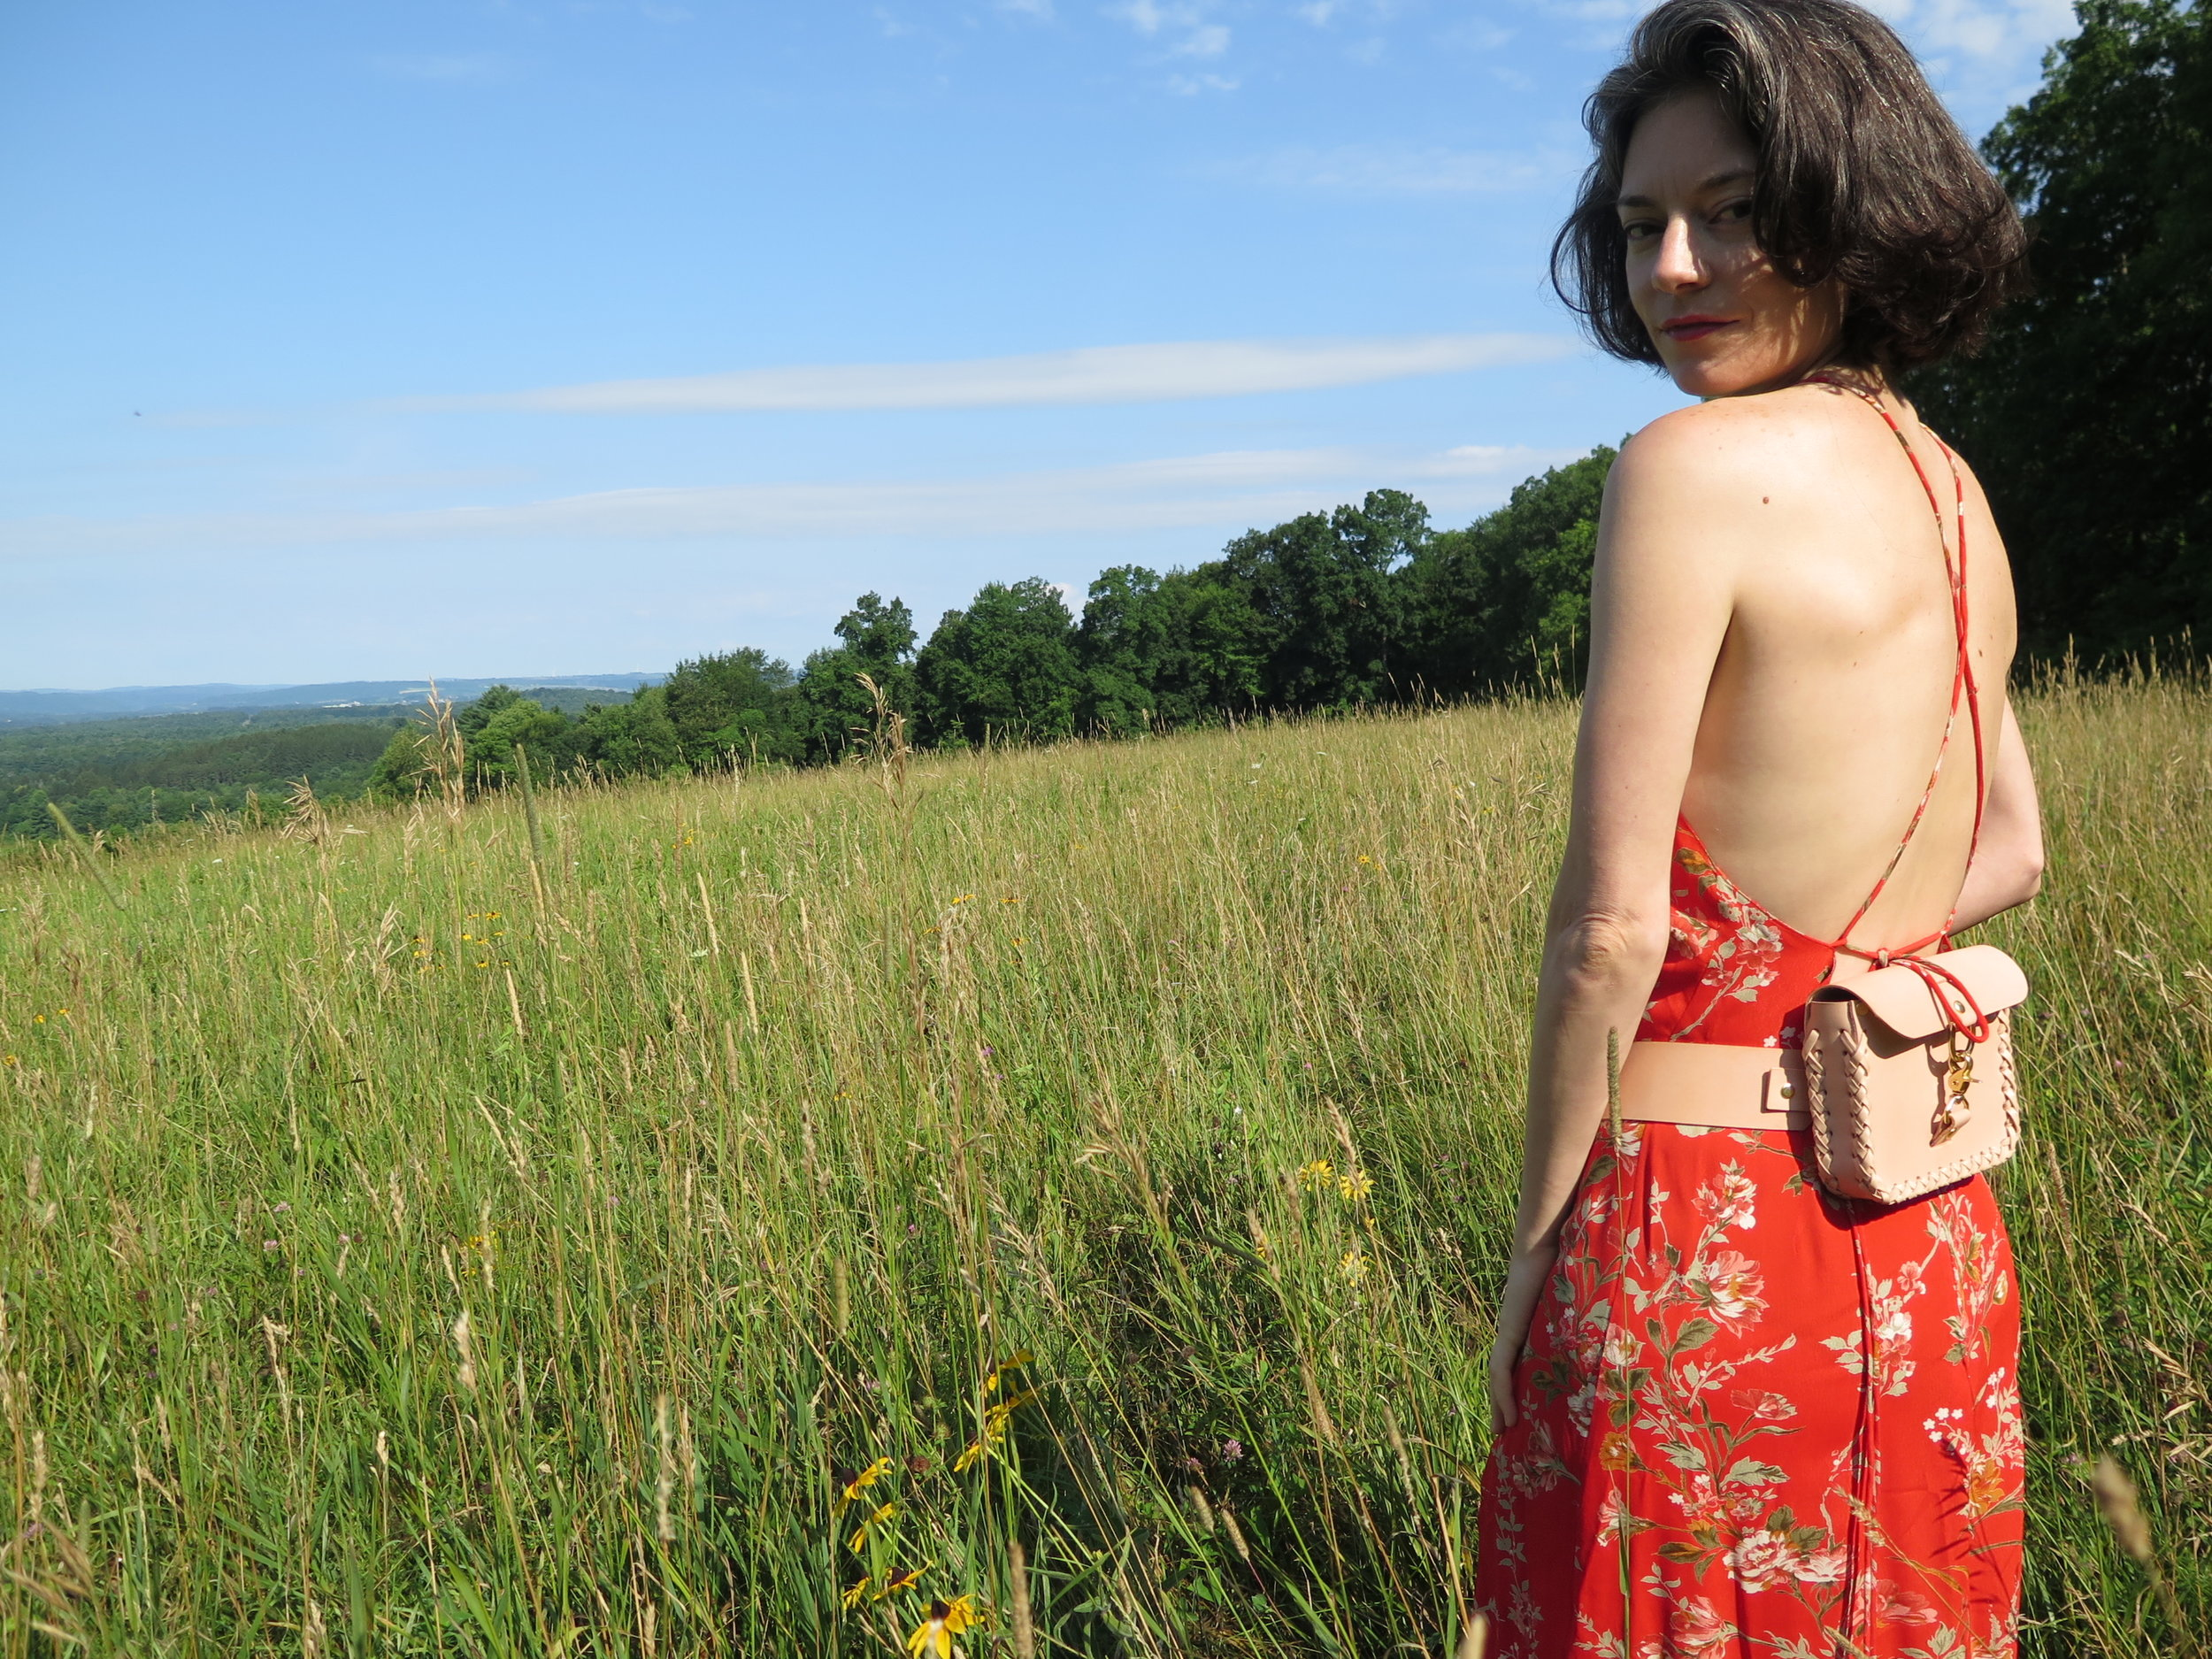 leather belt bag in nude by mary savel in a country field 6.JPG